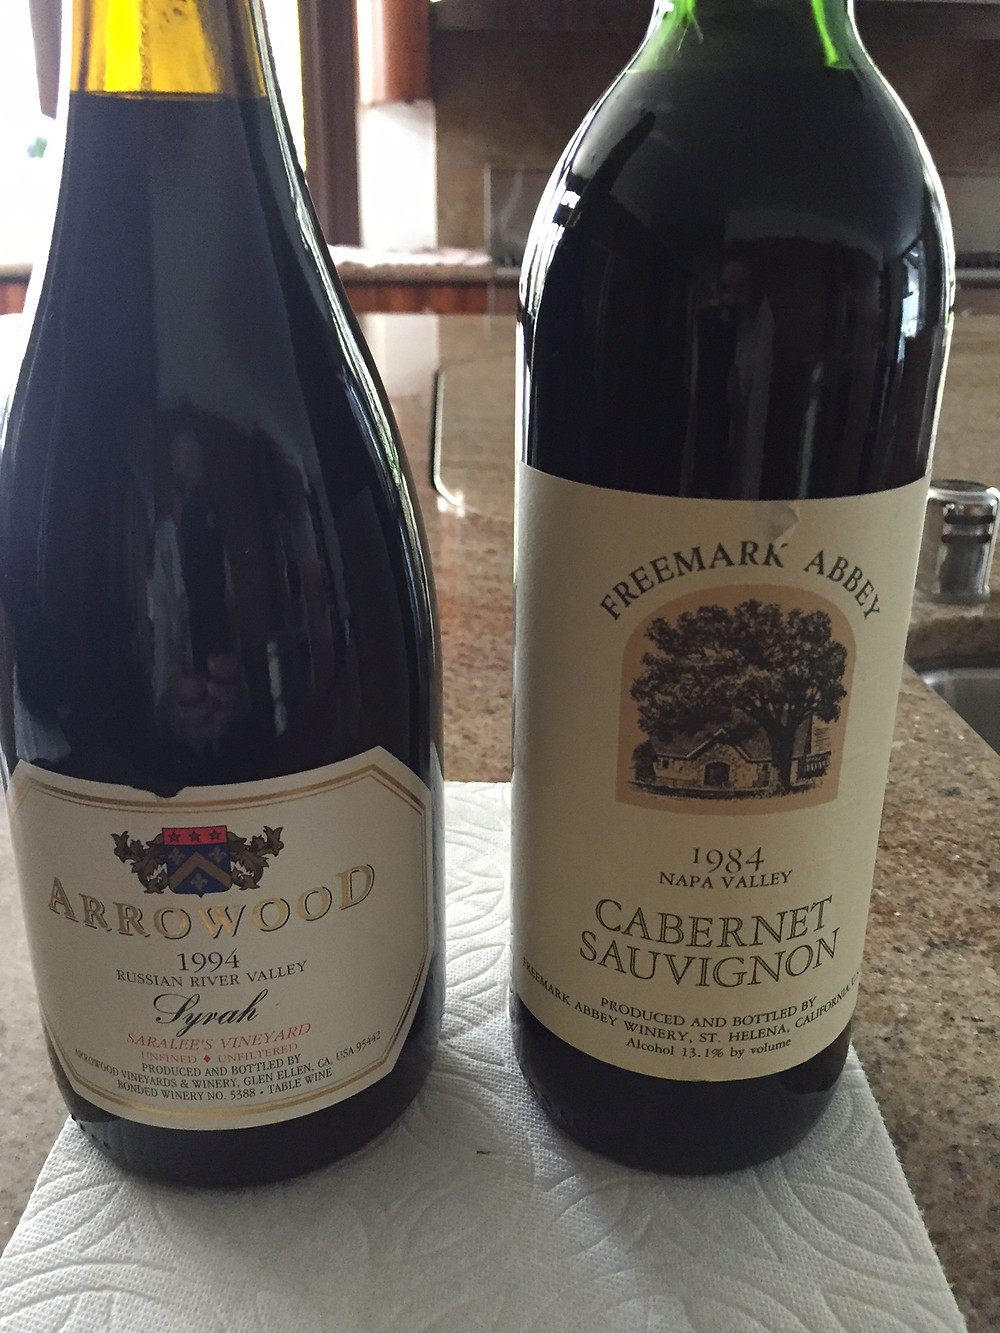 Two bottles of wine that have spoiled